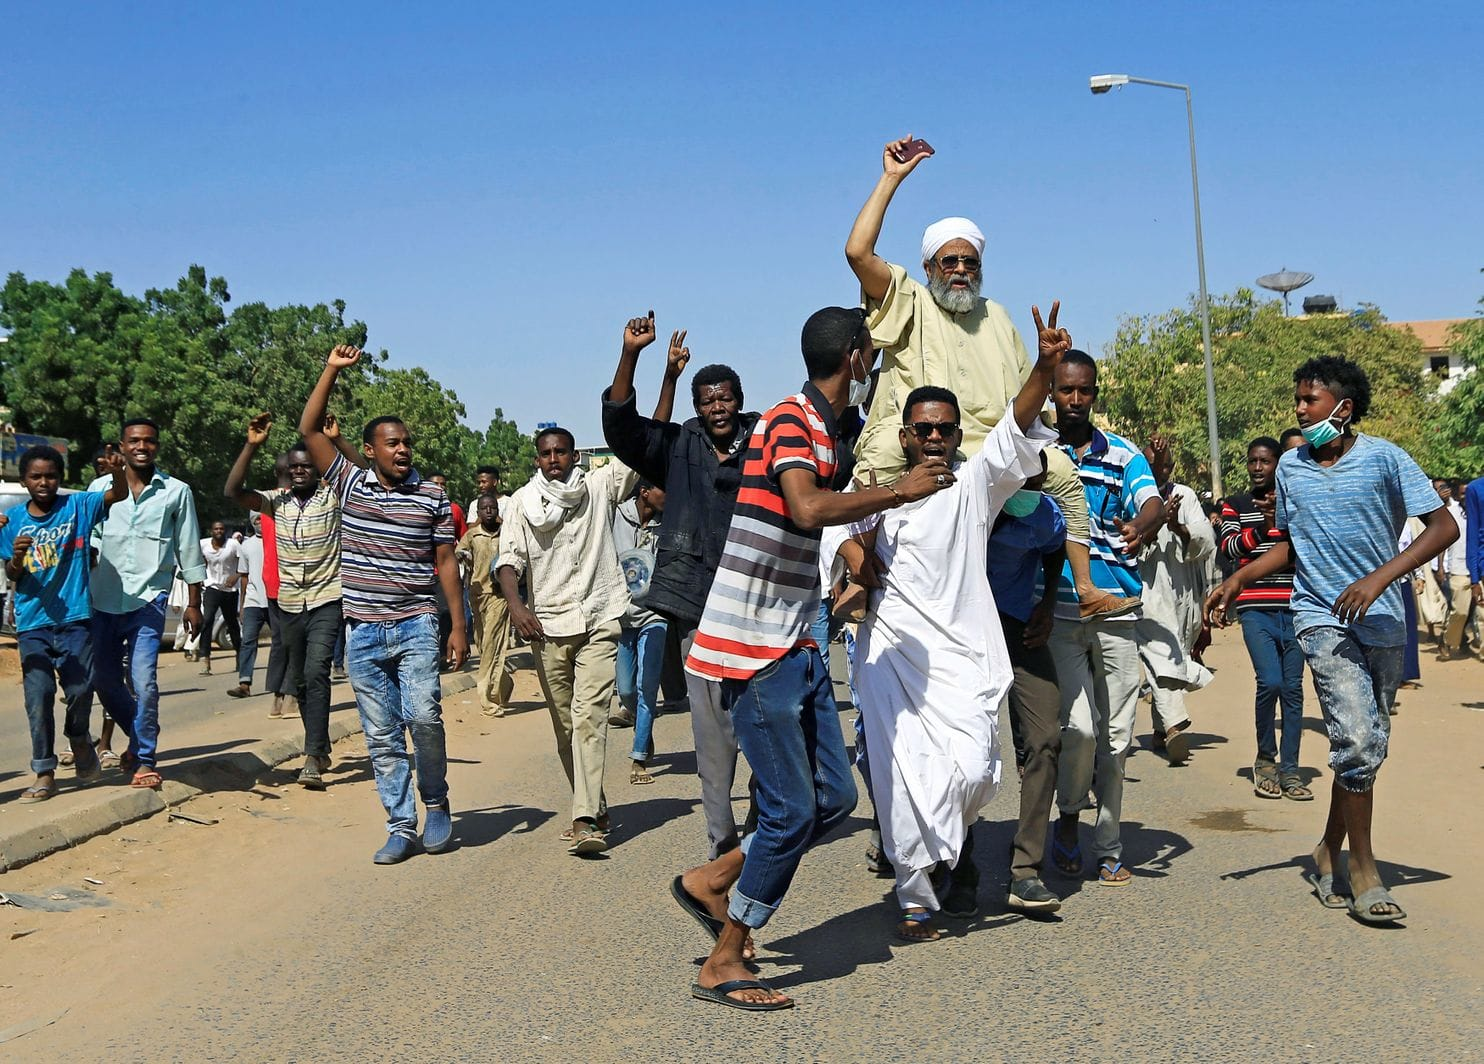 <US warns Sudan to free protesters, probe deaths